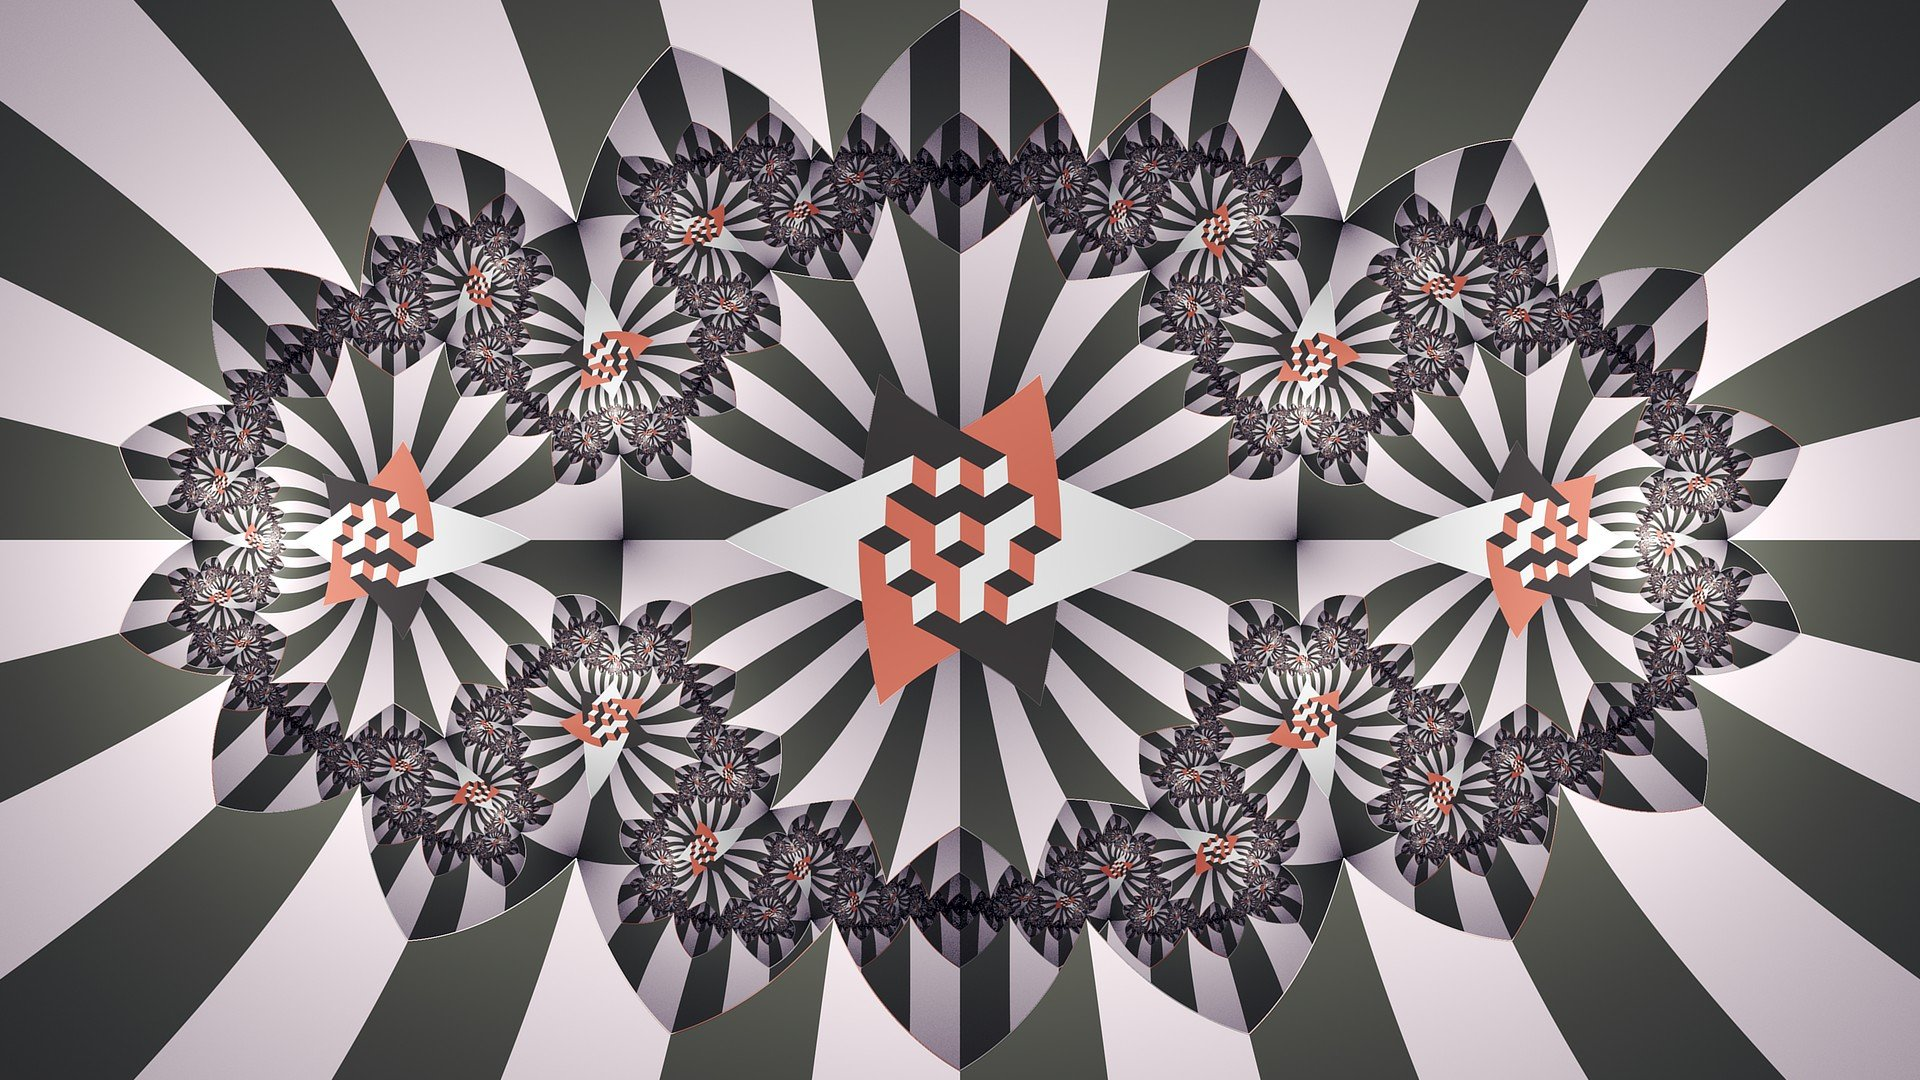 Vector symmetry abstract square black red white - Digital art wallpaper 3840x1080 ...